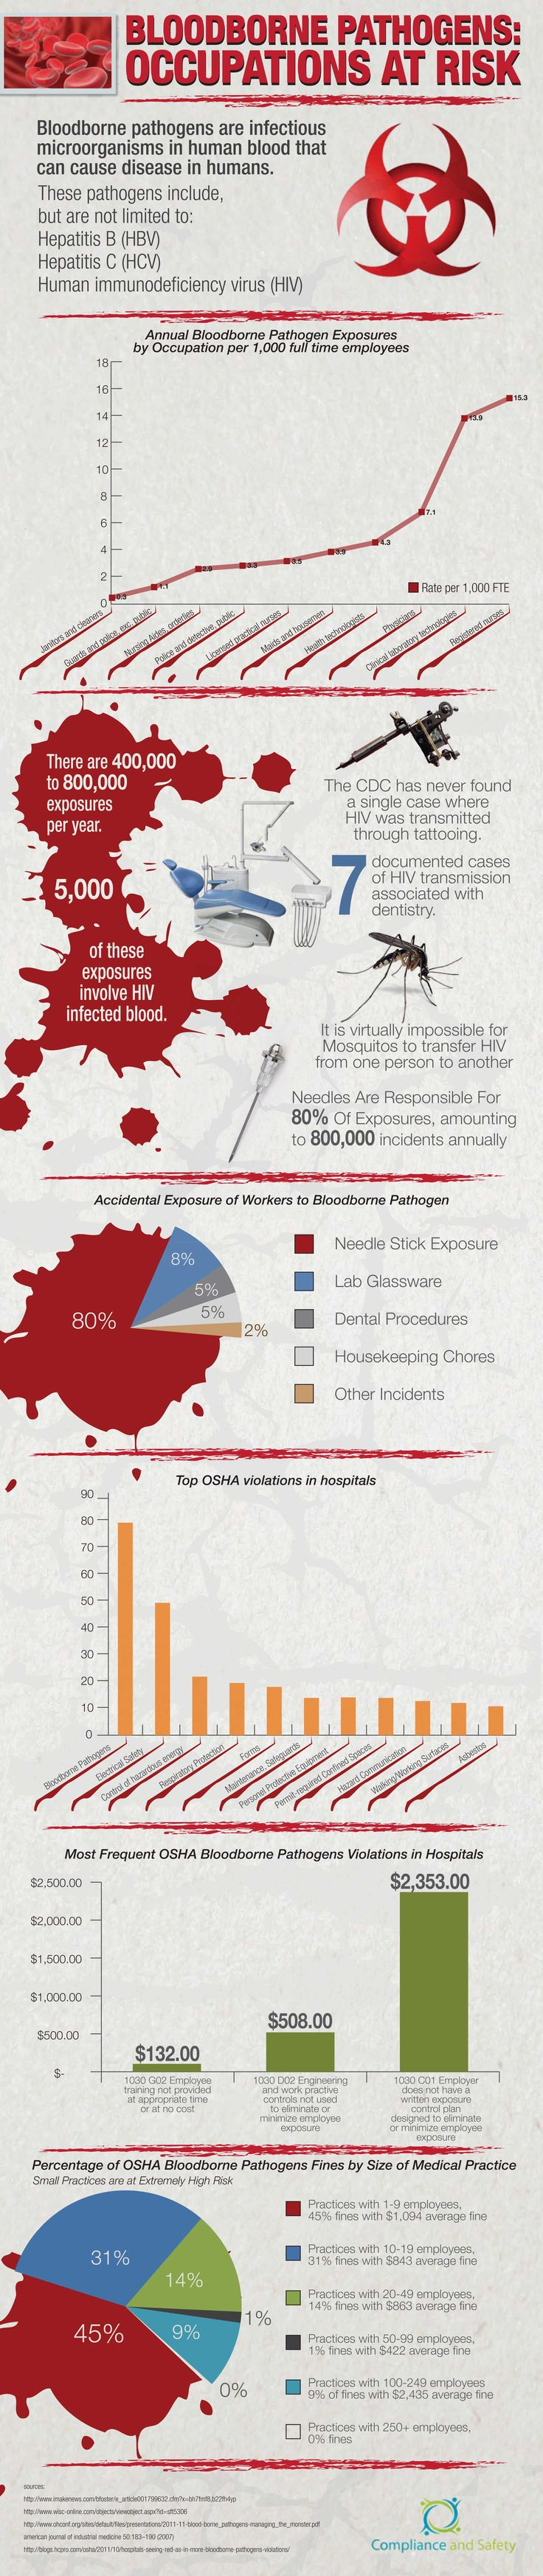 Bloodborne Pathogens: Occupations at Risk (Infographic)